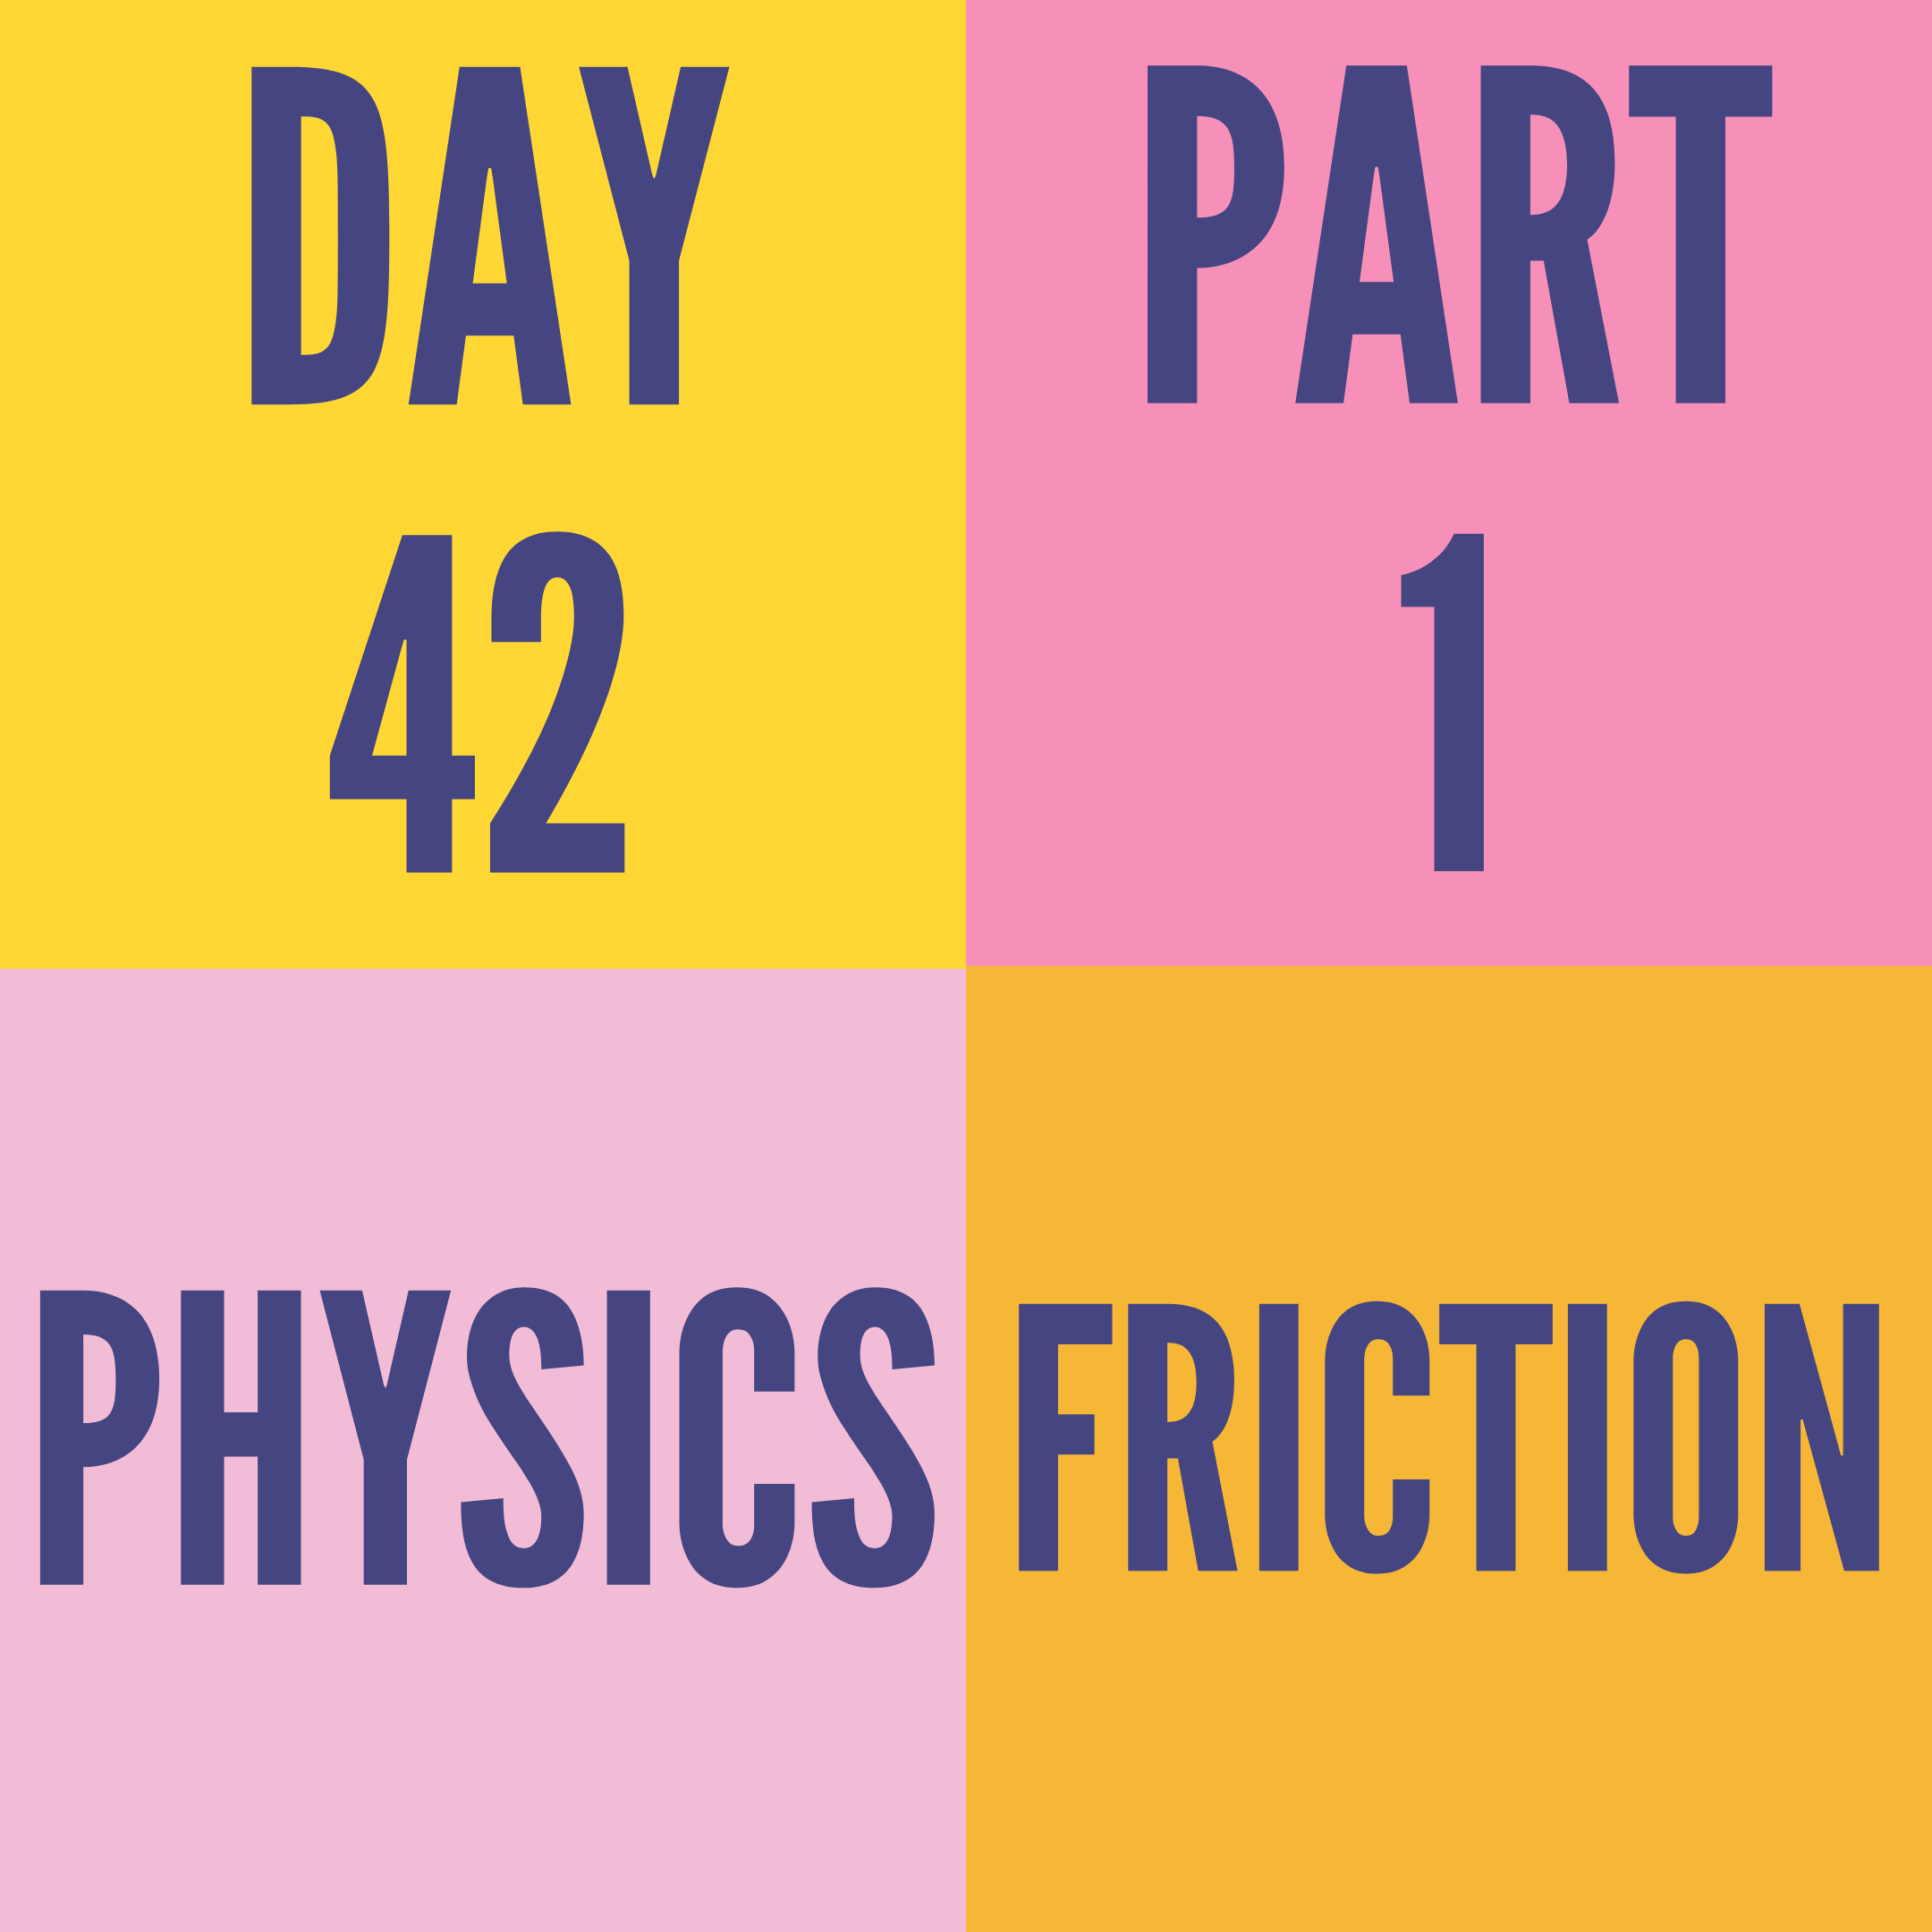 DAY-42 PART-1 FRICTION